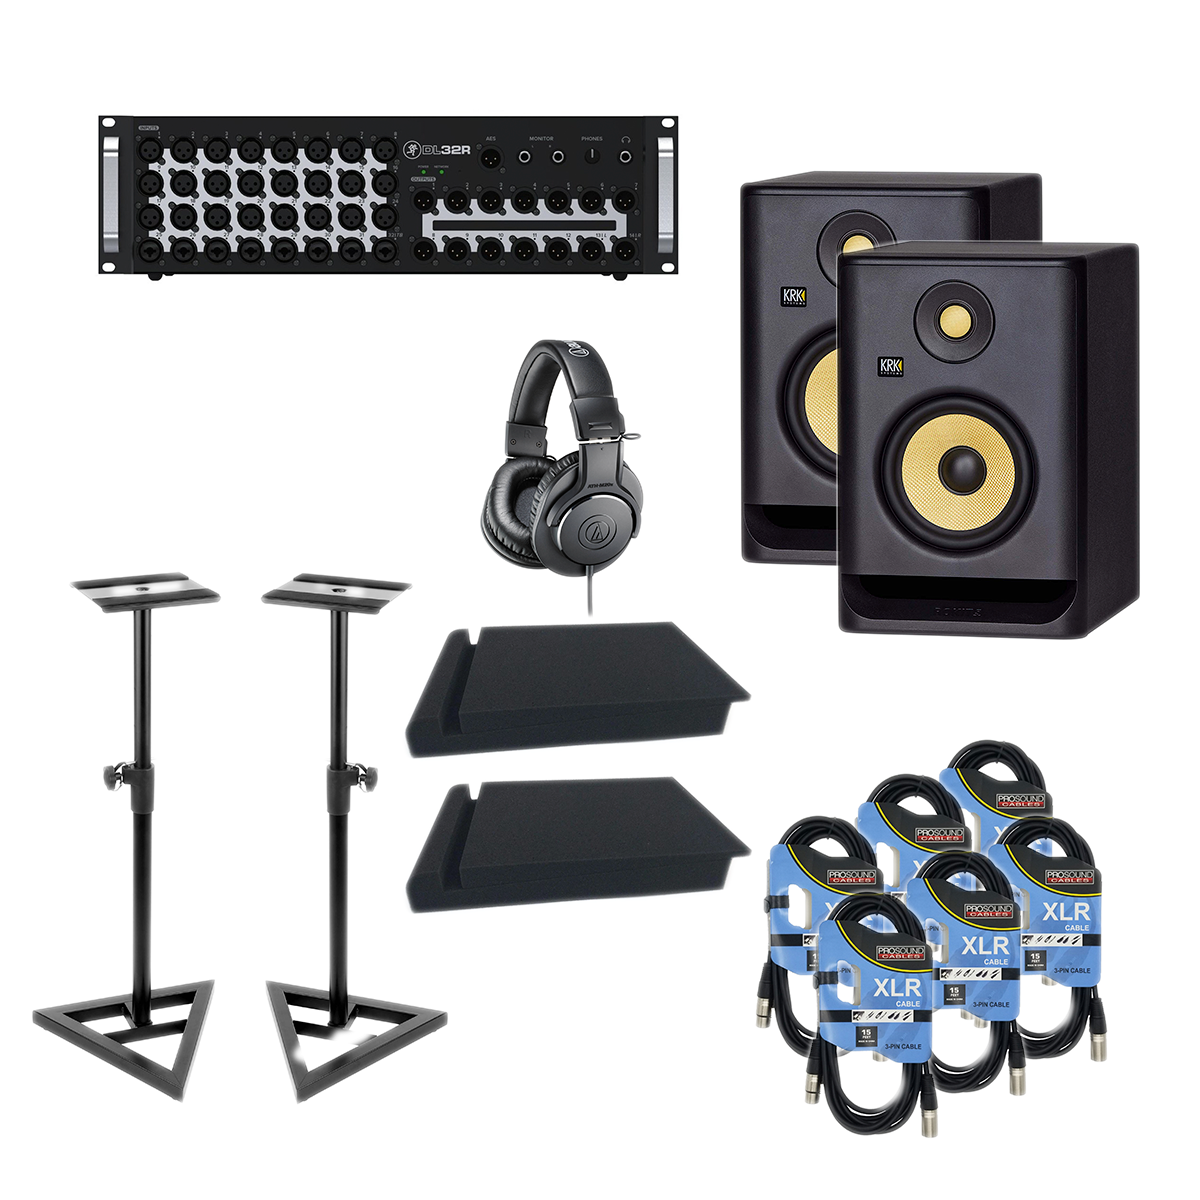 -2 Mackie DL32R 32-Channel - KRK RP5G4 Pair - Monitor Stands - Foam Pads - ATH-M20X - 6 XLR Cables - $2099.99